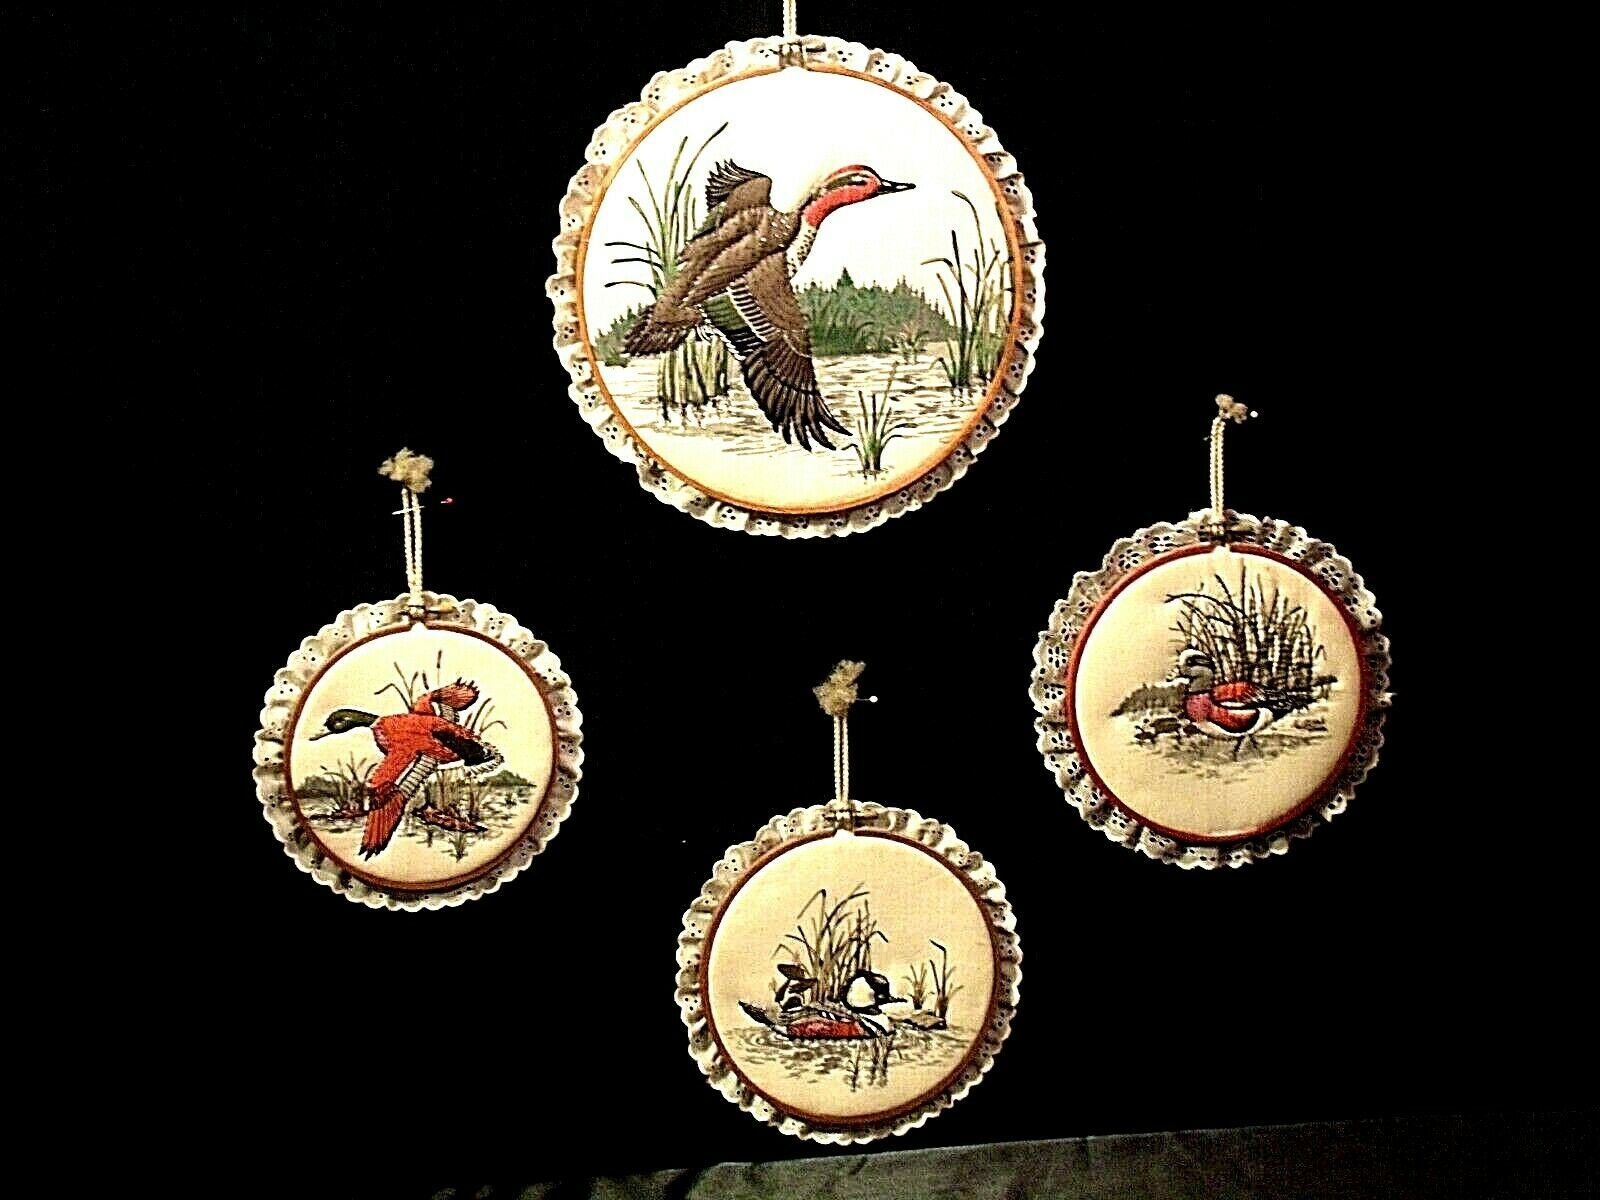 4 hanging embroidery images of ducks.AA19-1454 Vintage